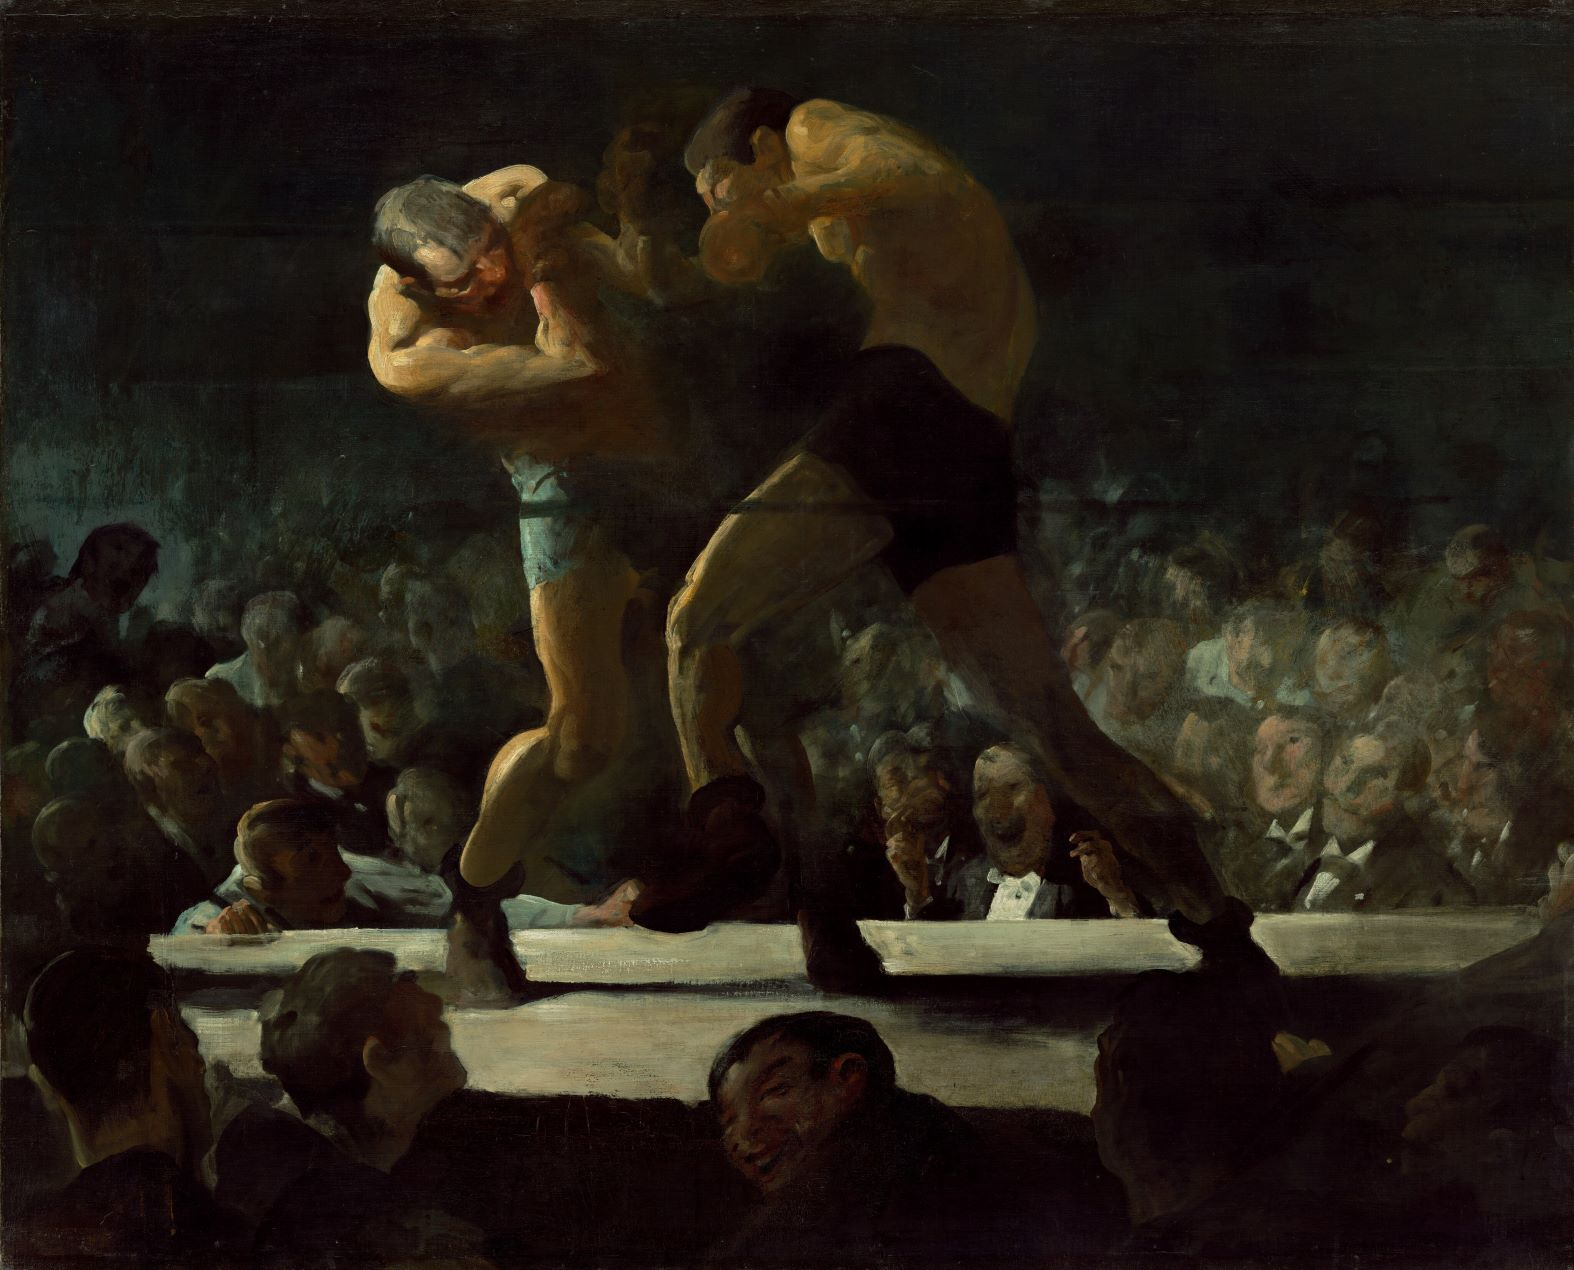 """George Bellows's paintings devoted to boxing were among the most popular pictures he produced during his lifetime and remain so today. Executed in August and September 1907, Club Night is the first of three similar boxing subjects that Bellows painted early in his career, from 1907 to 1909. Club Night represents a fight at an athletic club in New York City owned by Tom Sharkey, a former heavyweight champion. The enactment of the Lewis Law in 1900 prohibited boxing in New York State, but Sharkey and others circumvented the law by staging bouts in their private """"clubs,"""" where attendees paid membership dues instead of admission fees to a particular fight, allowing them to legally gamble on matches. The public's generally positive response to this controversial subject reflected an ambivalent attitude toward the sport. Some regarded boxing as a savage, brutal pastime, but many thought it a natural manifestation of masculinity. When criticized for not accurately representing certain technical aspects of the sport, Bellows responded, """"I don't know anything about boxing. I'm just painting two men trying to kill each other."""""""